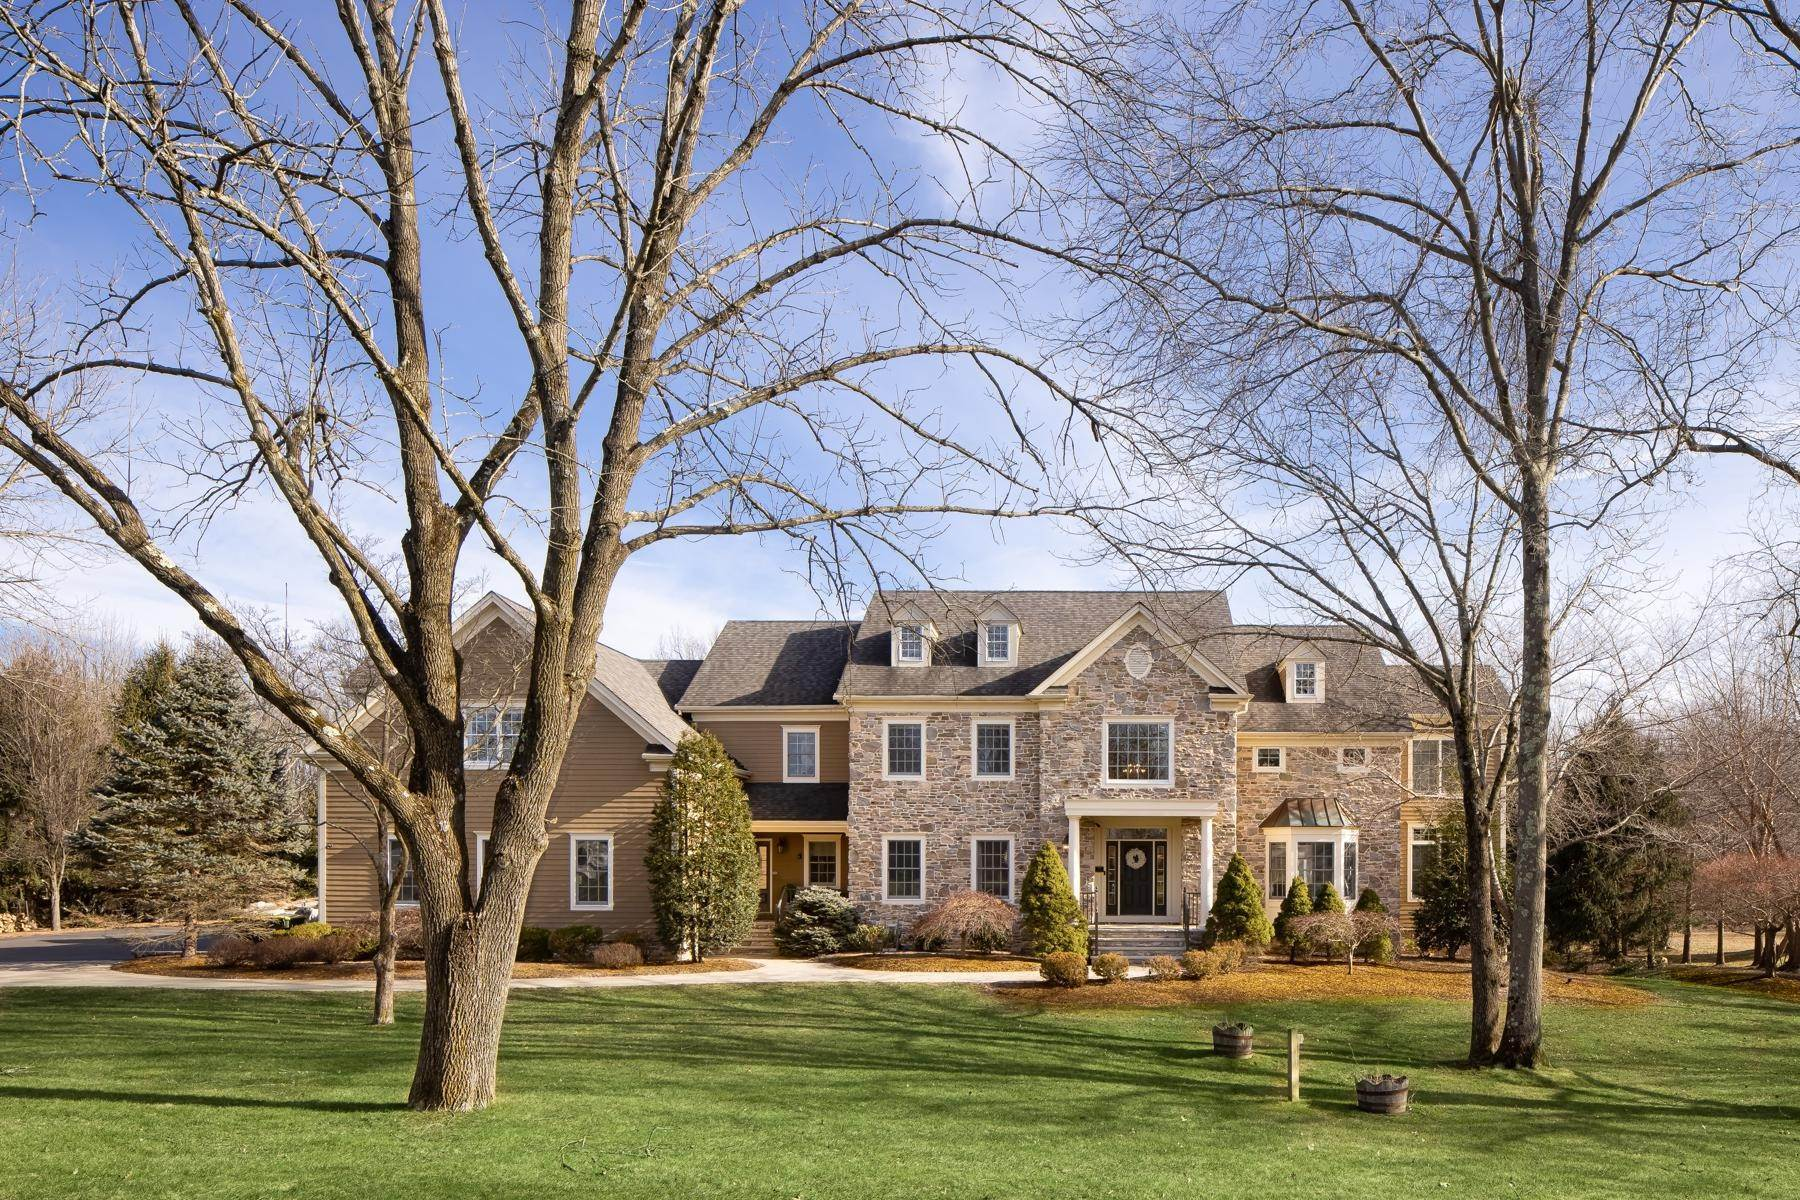 Single Family Homes for Sale at Emerald Valley Perfection 15 Emerald Valley Lane Basking Ridge, New Jersey 07920 United States